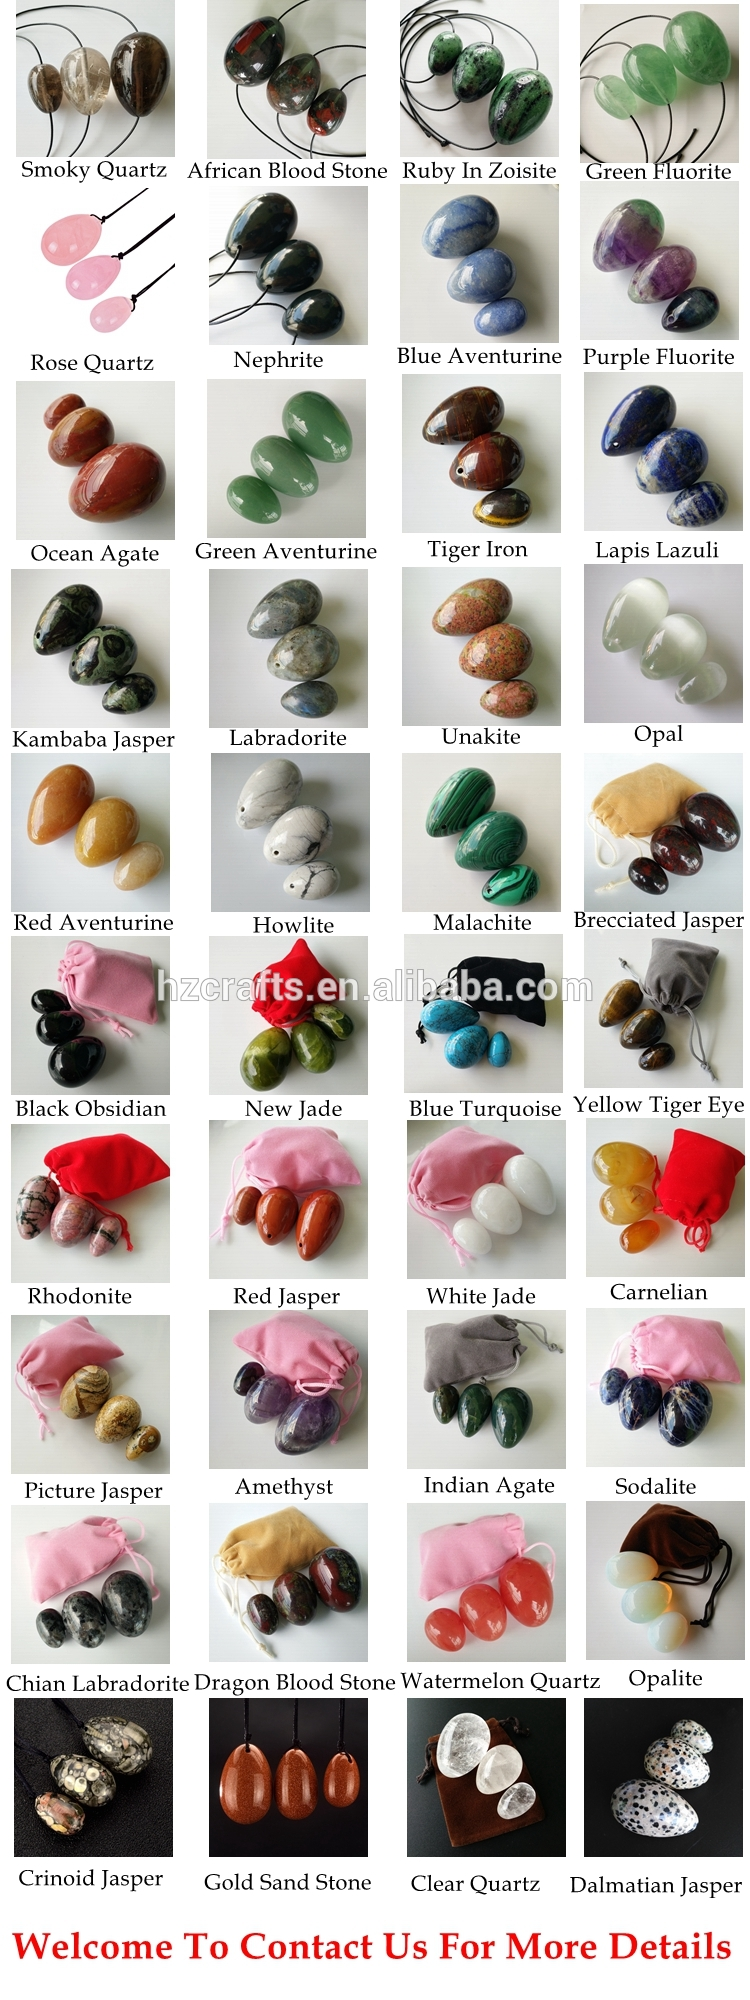 Low price of healing jade eggs for keggle exercises women kegel egg exercise wholesale marking